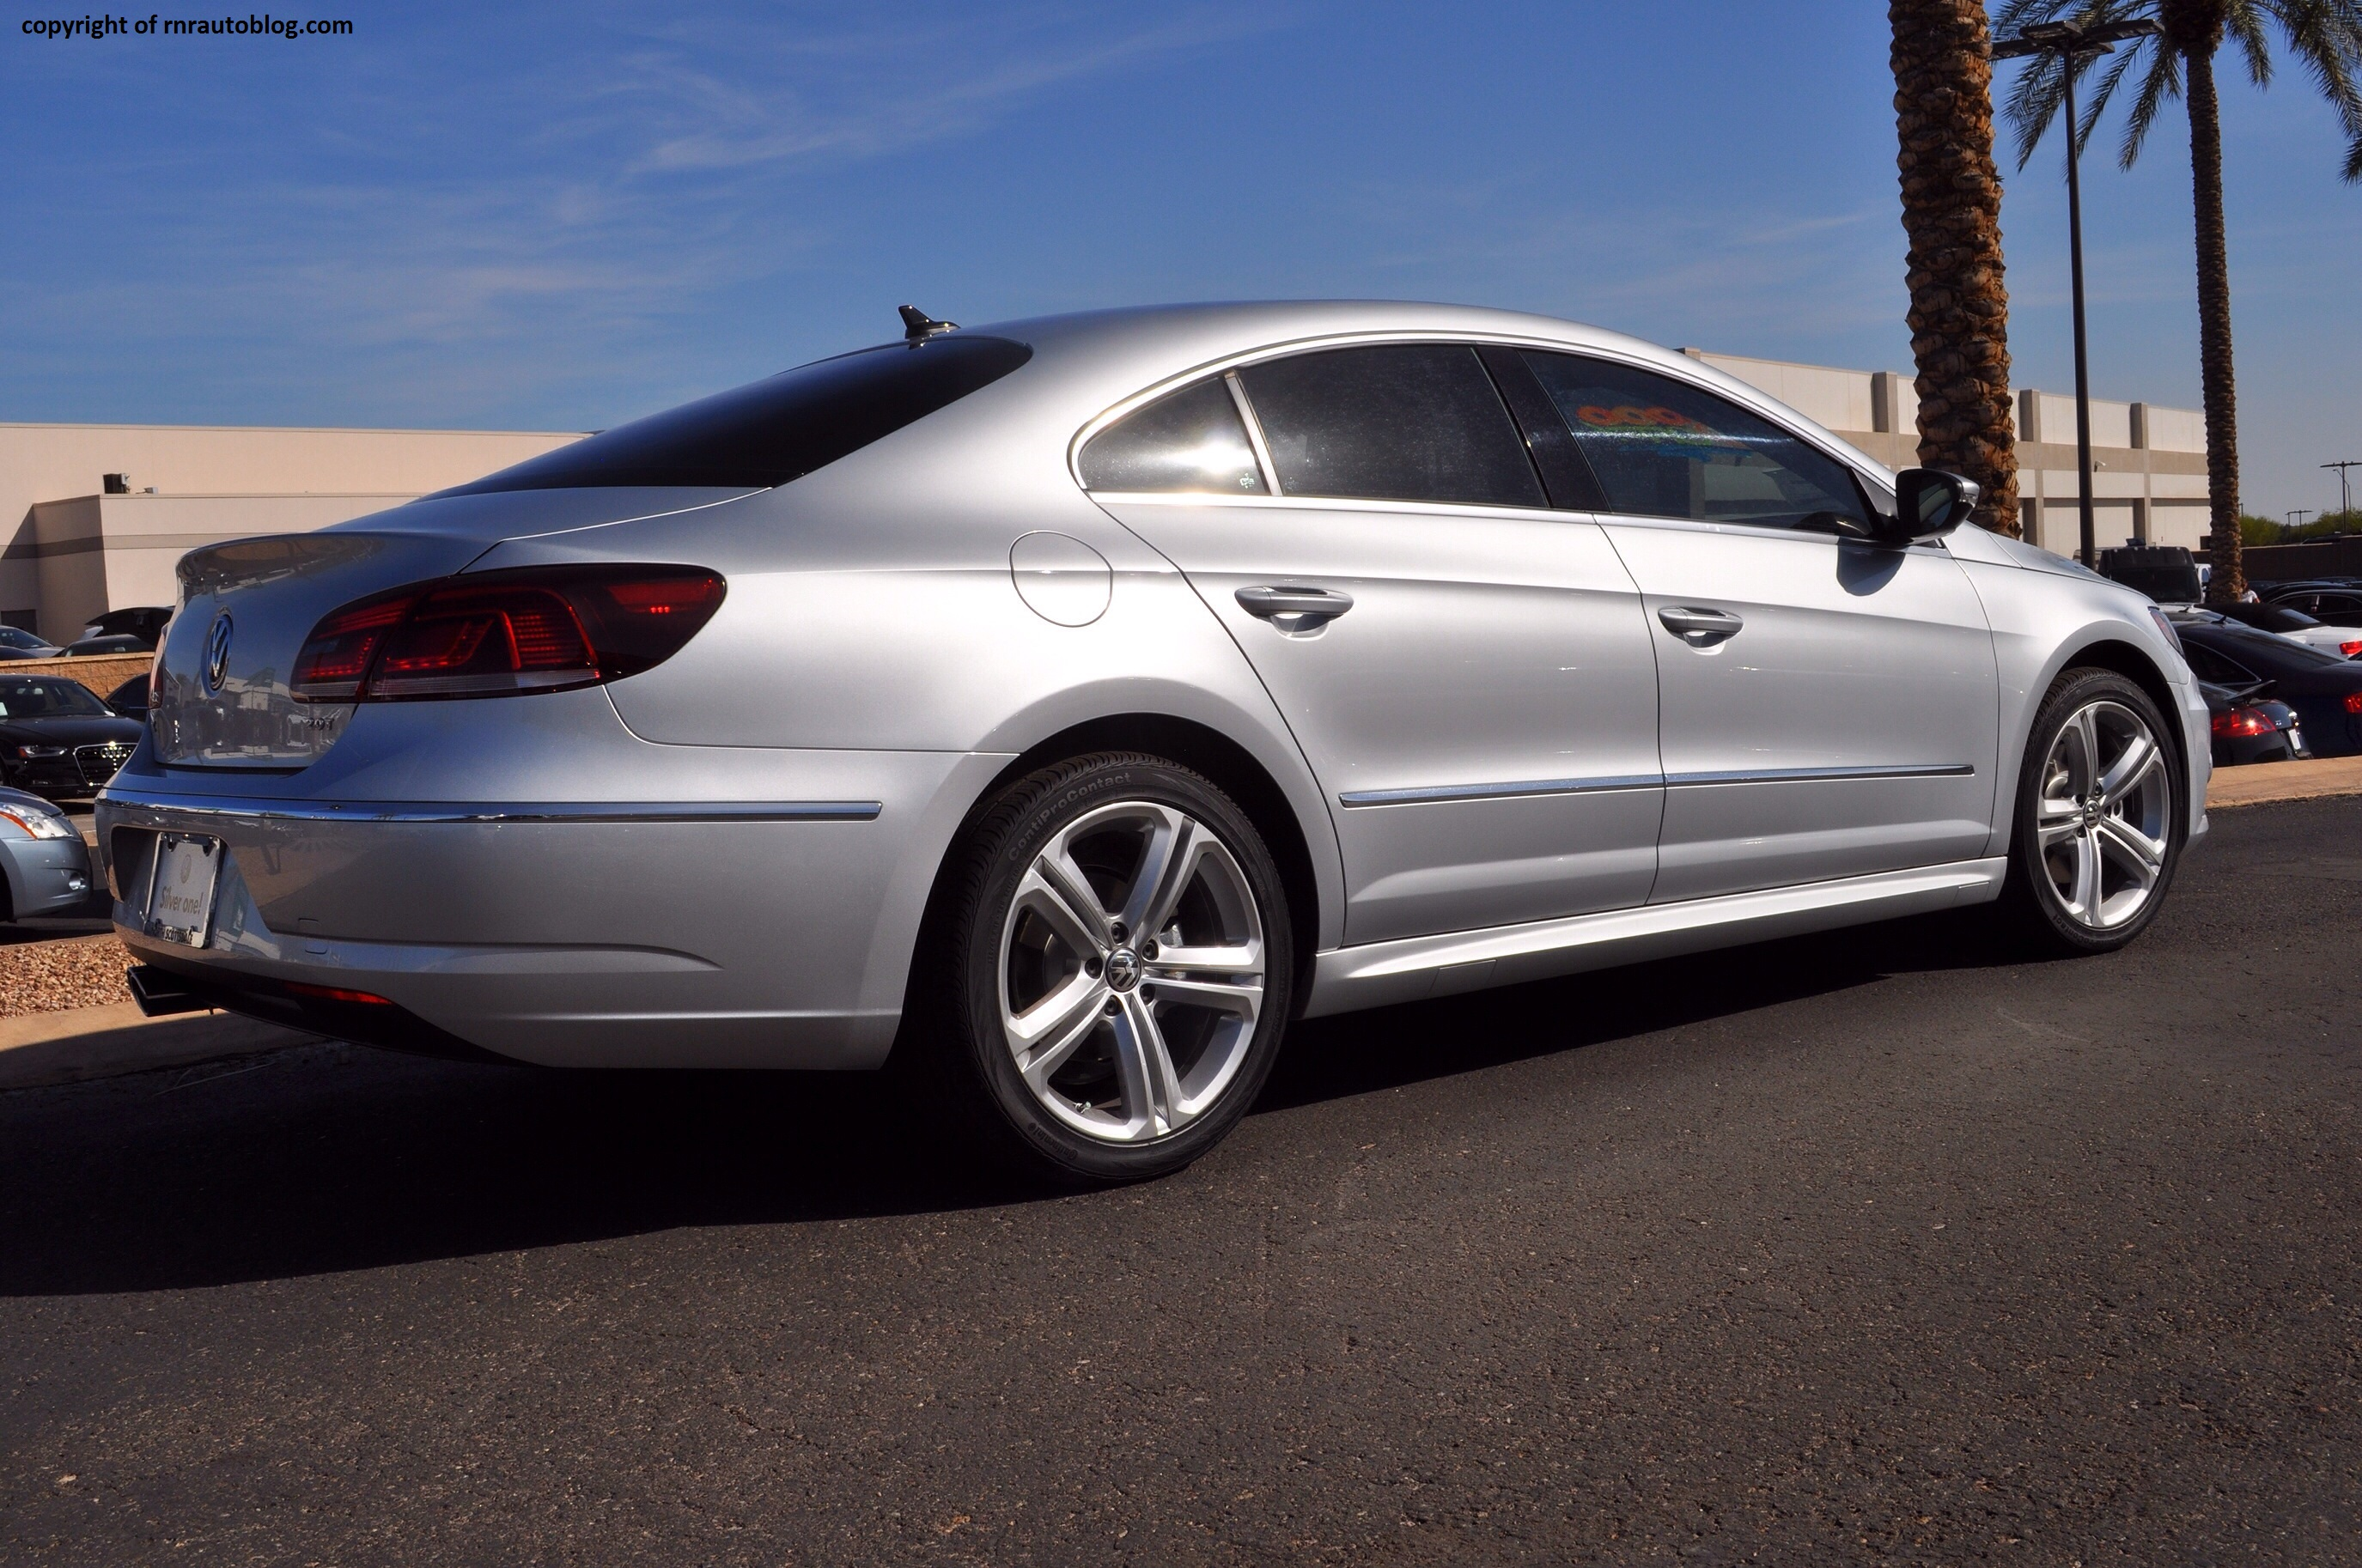 Volkswagen European Delivery >> 2014 Volkswagen CC R-Line Review | RNR Automotive Blog